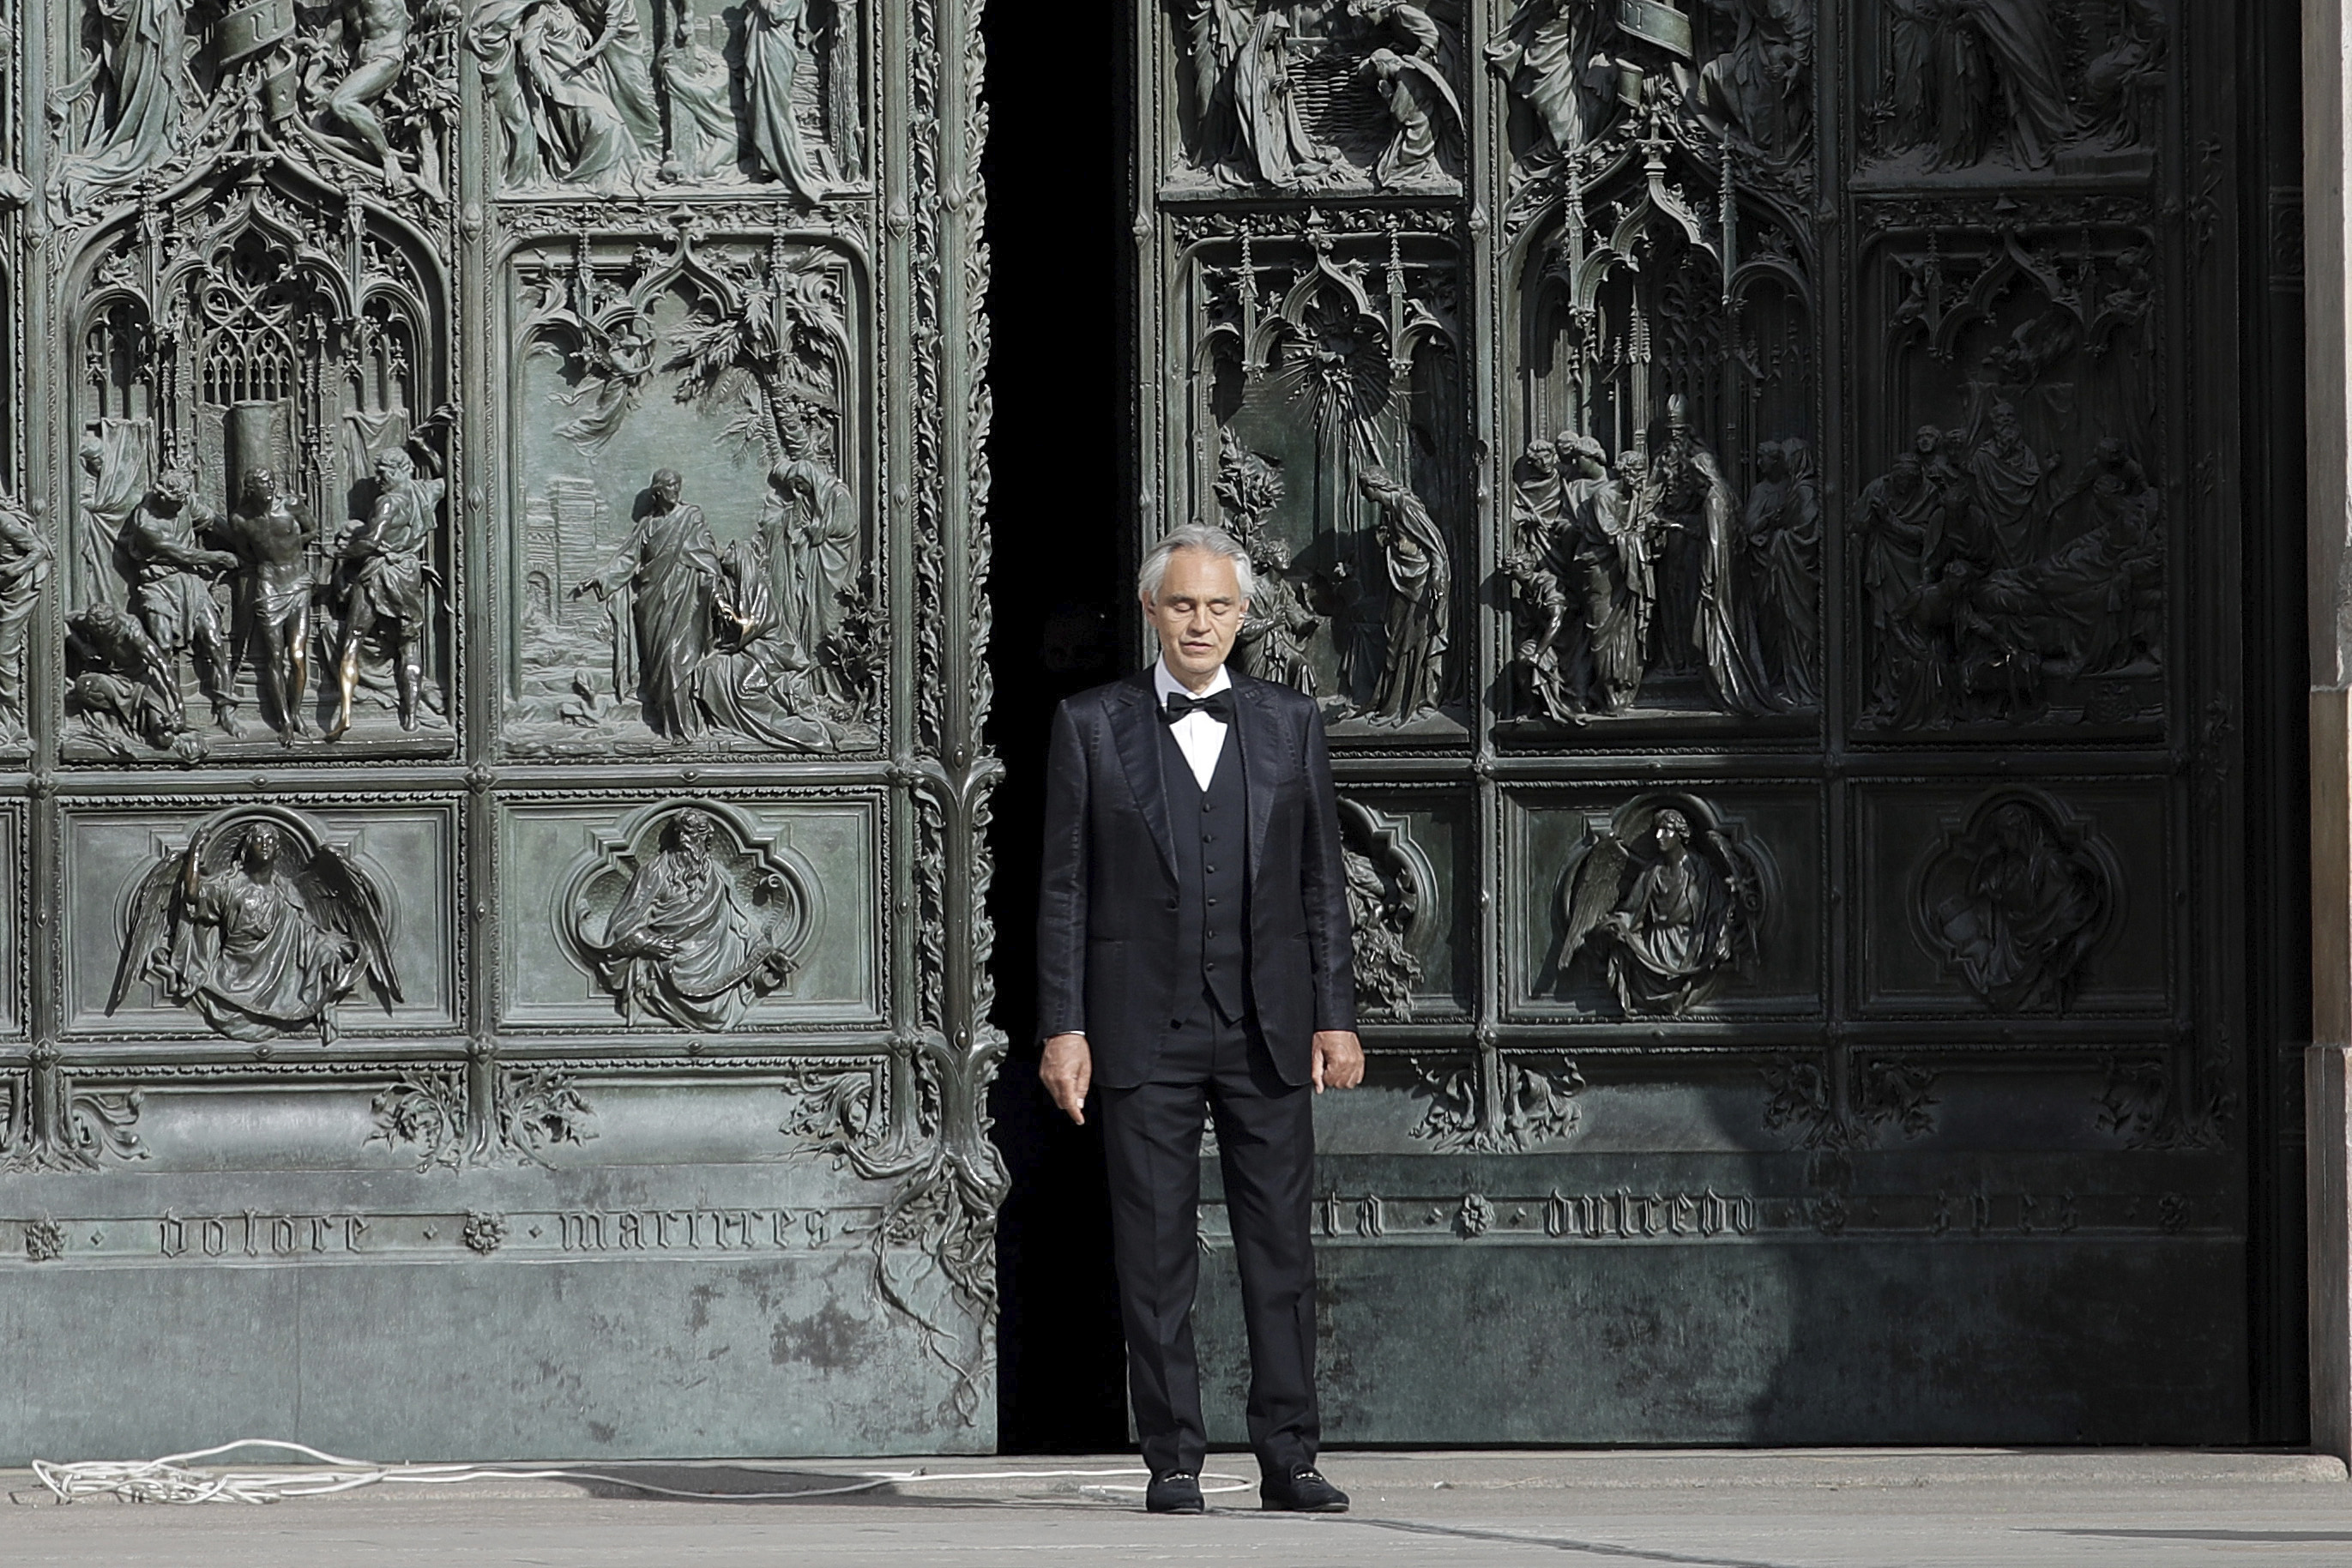 Italian singer Andrea Bocelli performs outside the Duomo cathedral, in Milan, Italy, earlier this year.